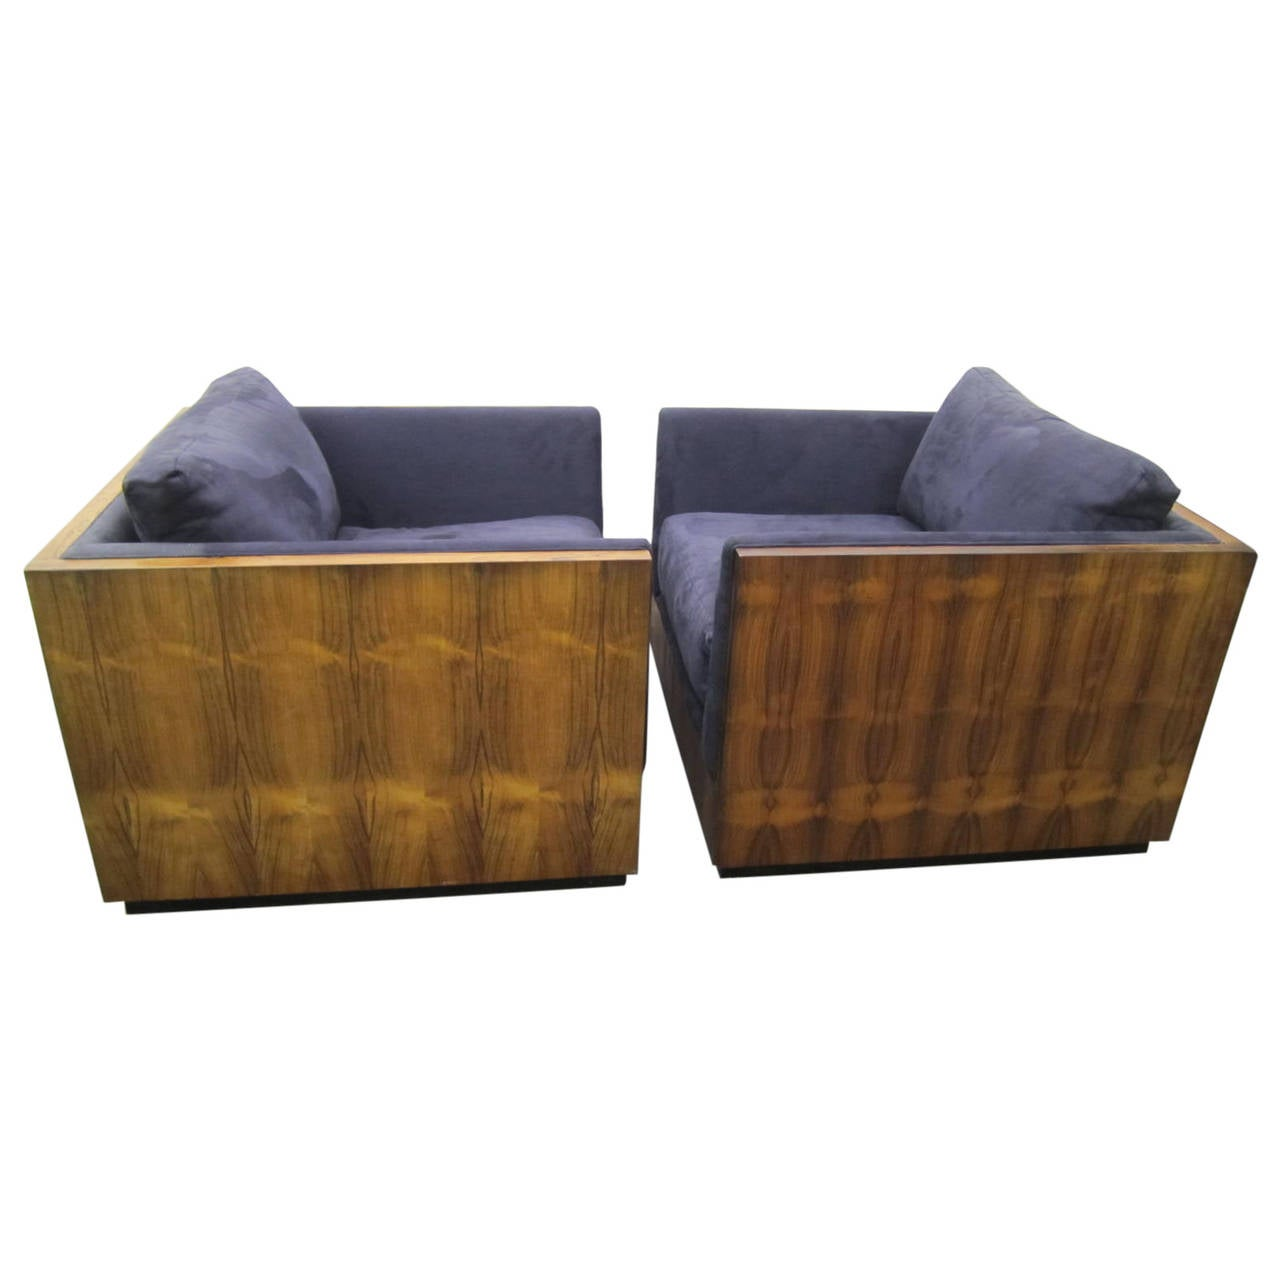 milo baughman furniture. Spectacular Pair Of Milo Baughman Rosewood Cube Chairs, Mid-Century Modern For Sale Furniture W